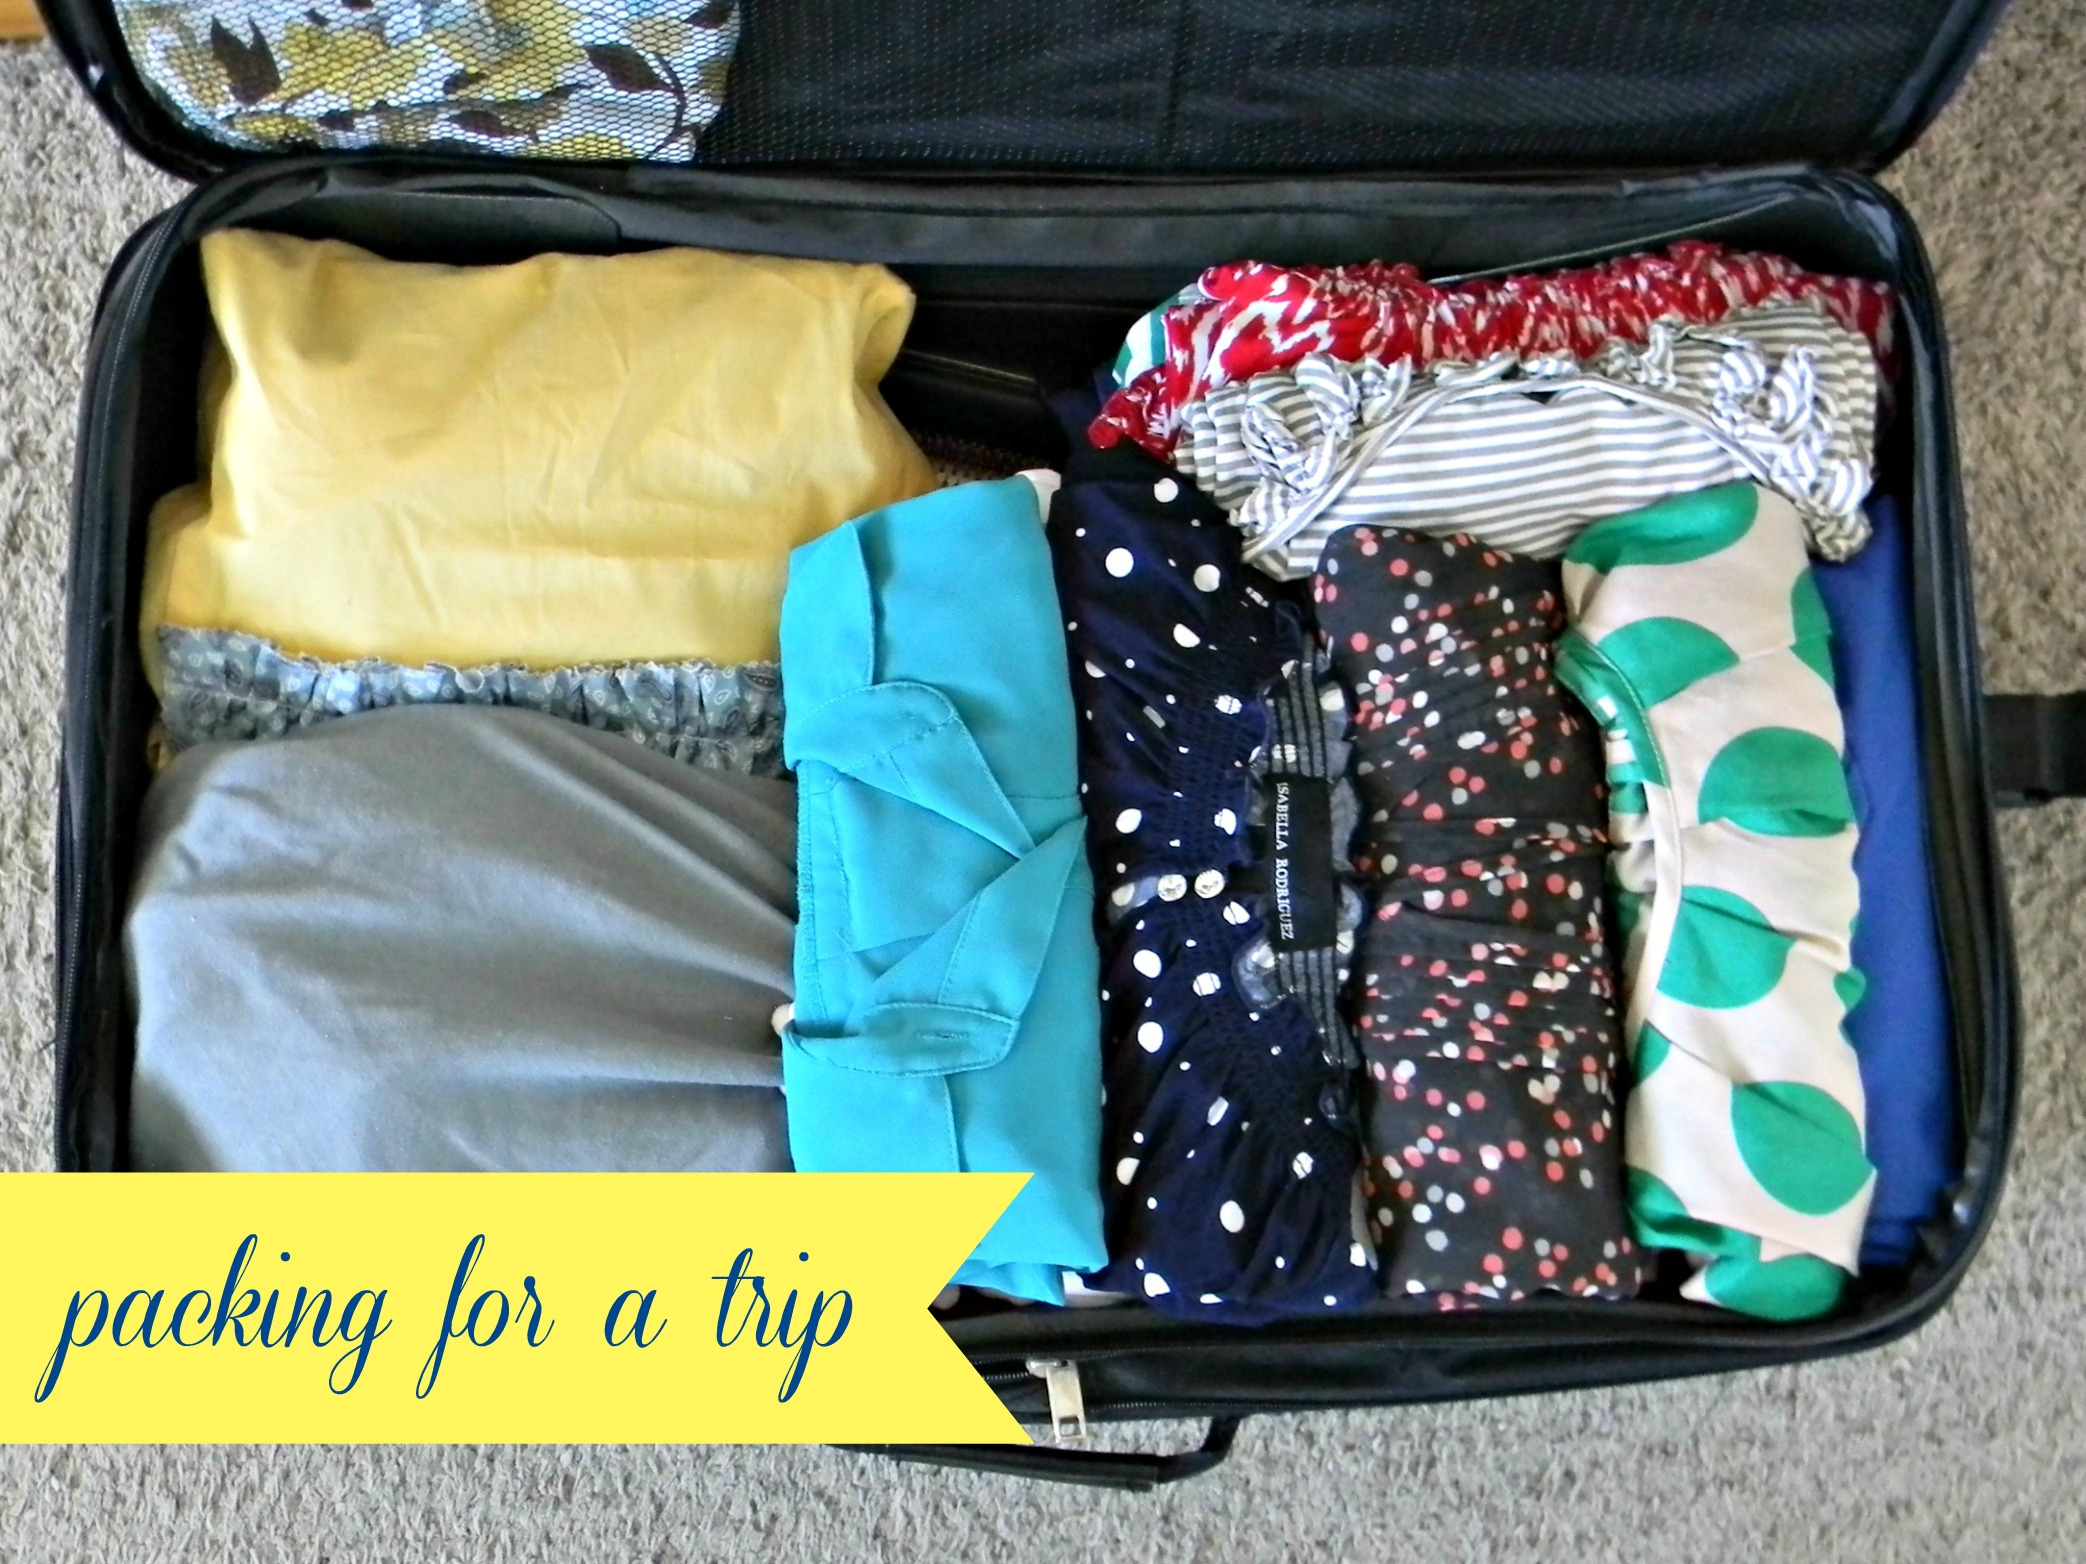 Packing for a trip